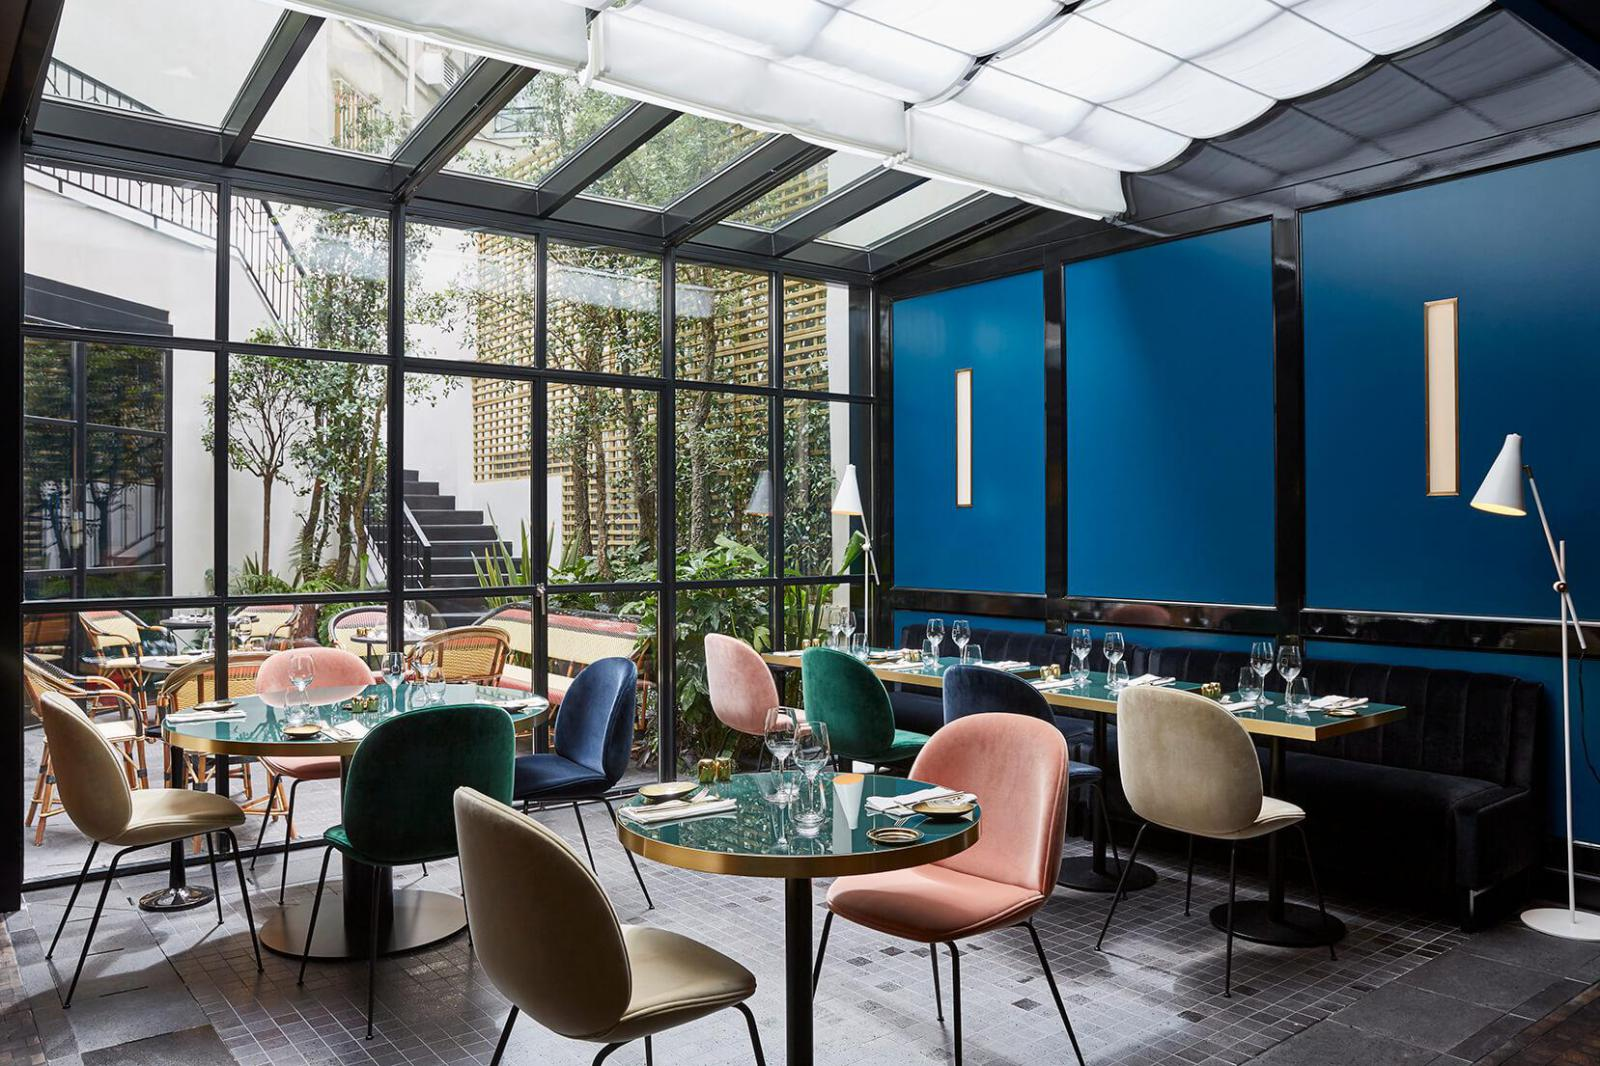 Le roch hotel a stylish oasis in the heart of - Le petit salon paris ...